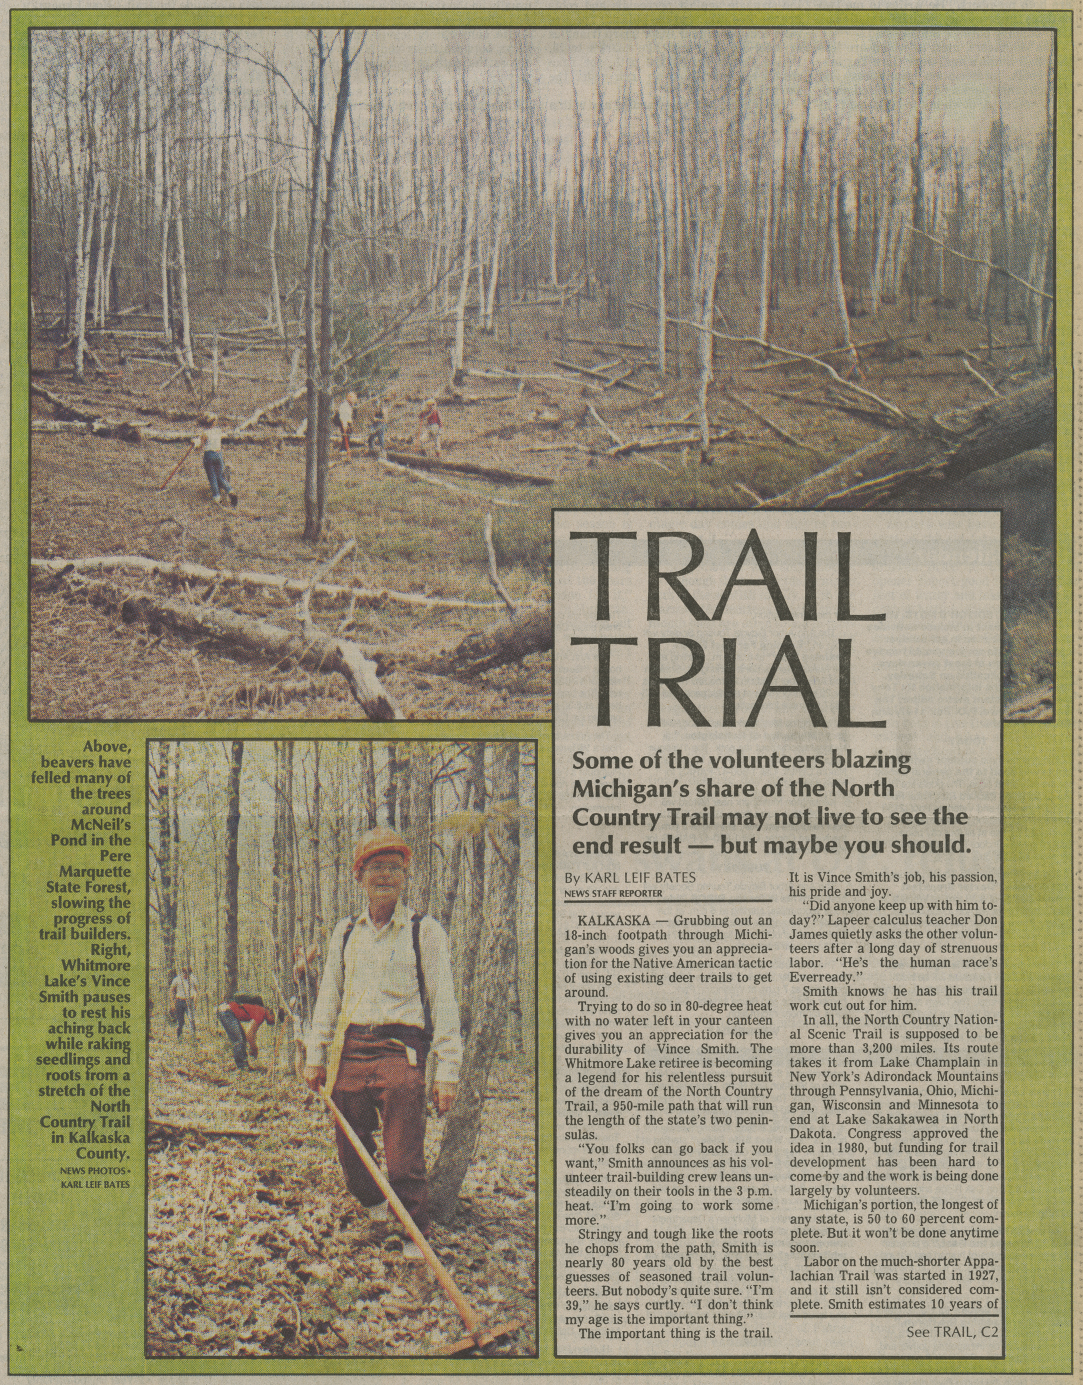 Trail Trial image